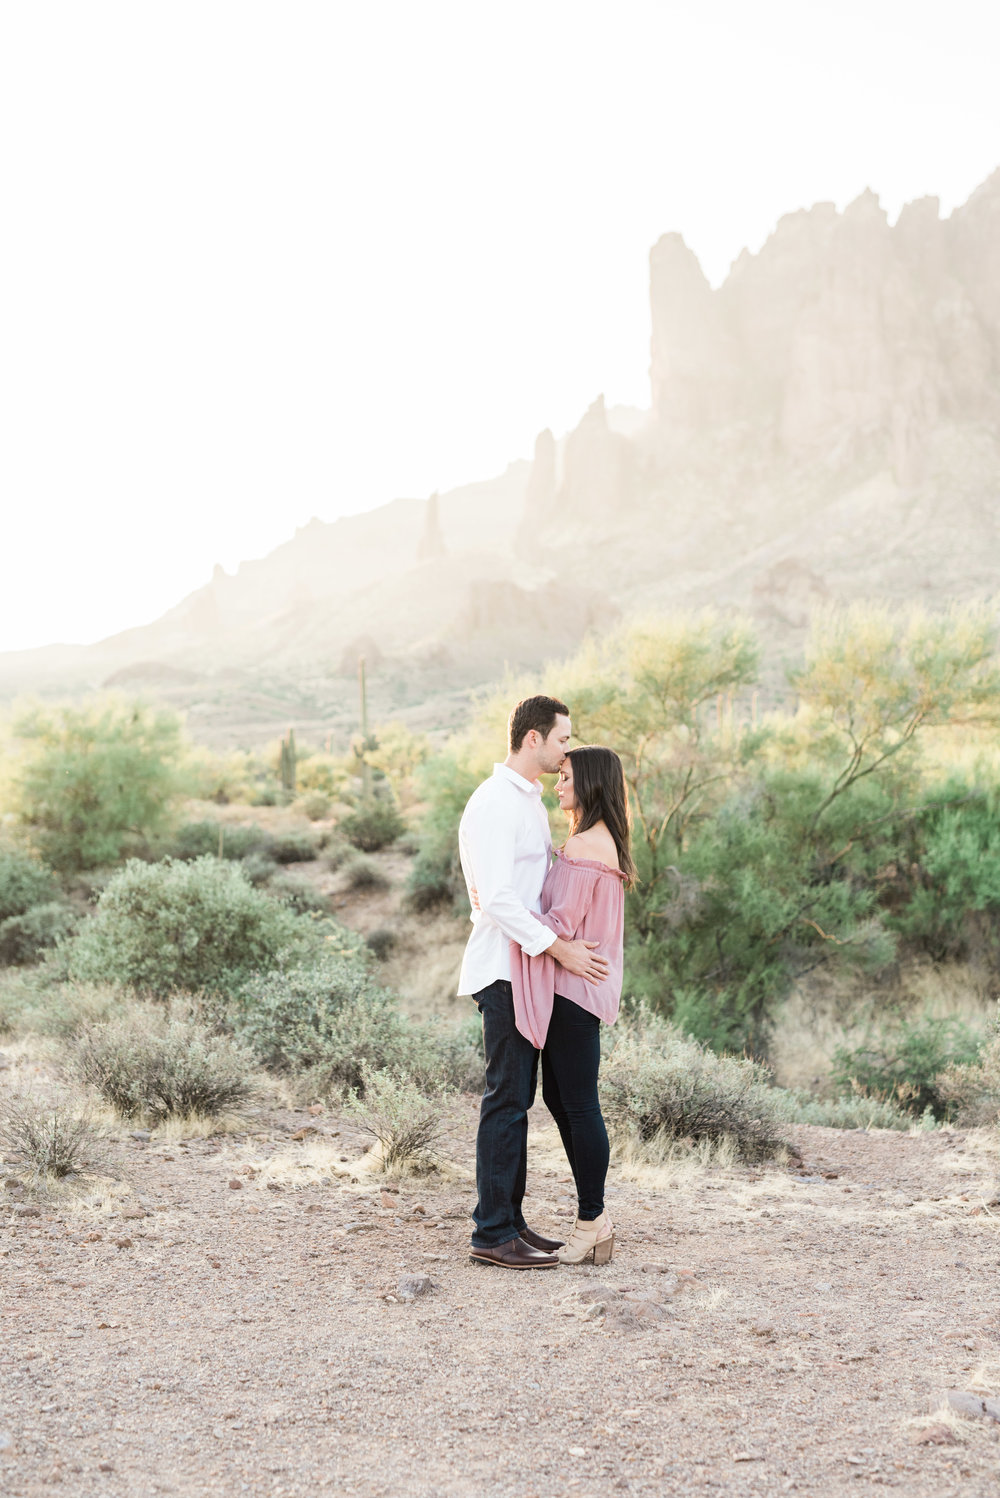 ENGAGEMENT    Elizabeth & Walt     Superstition Mountains, AZ